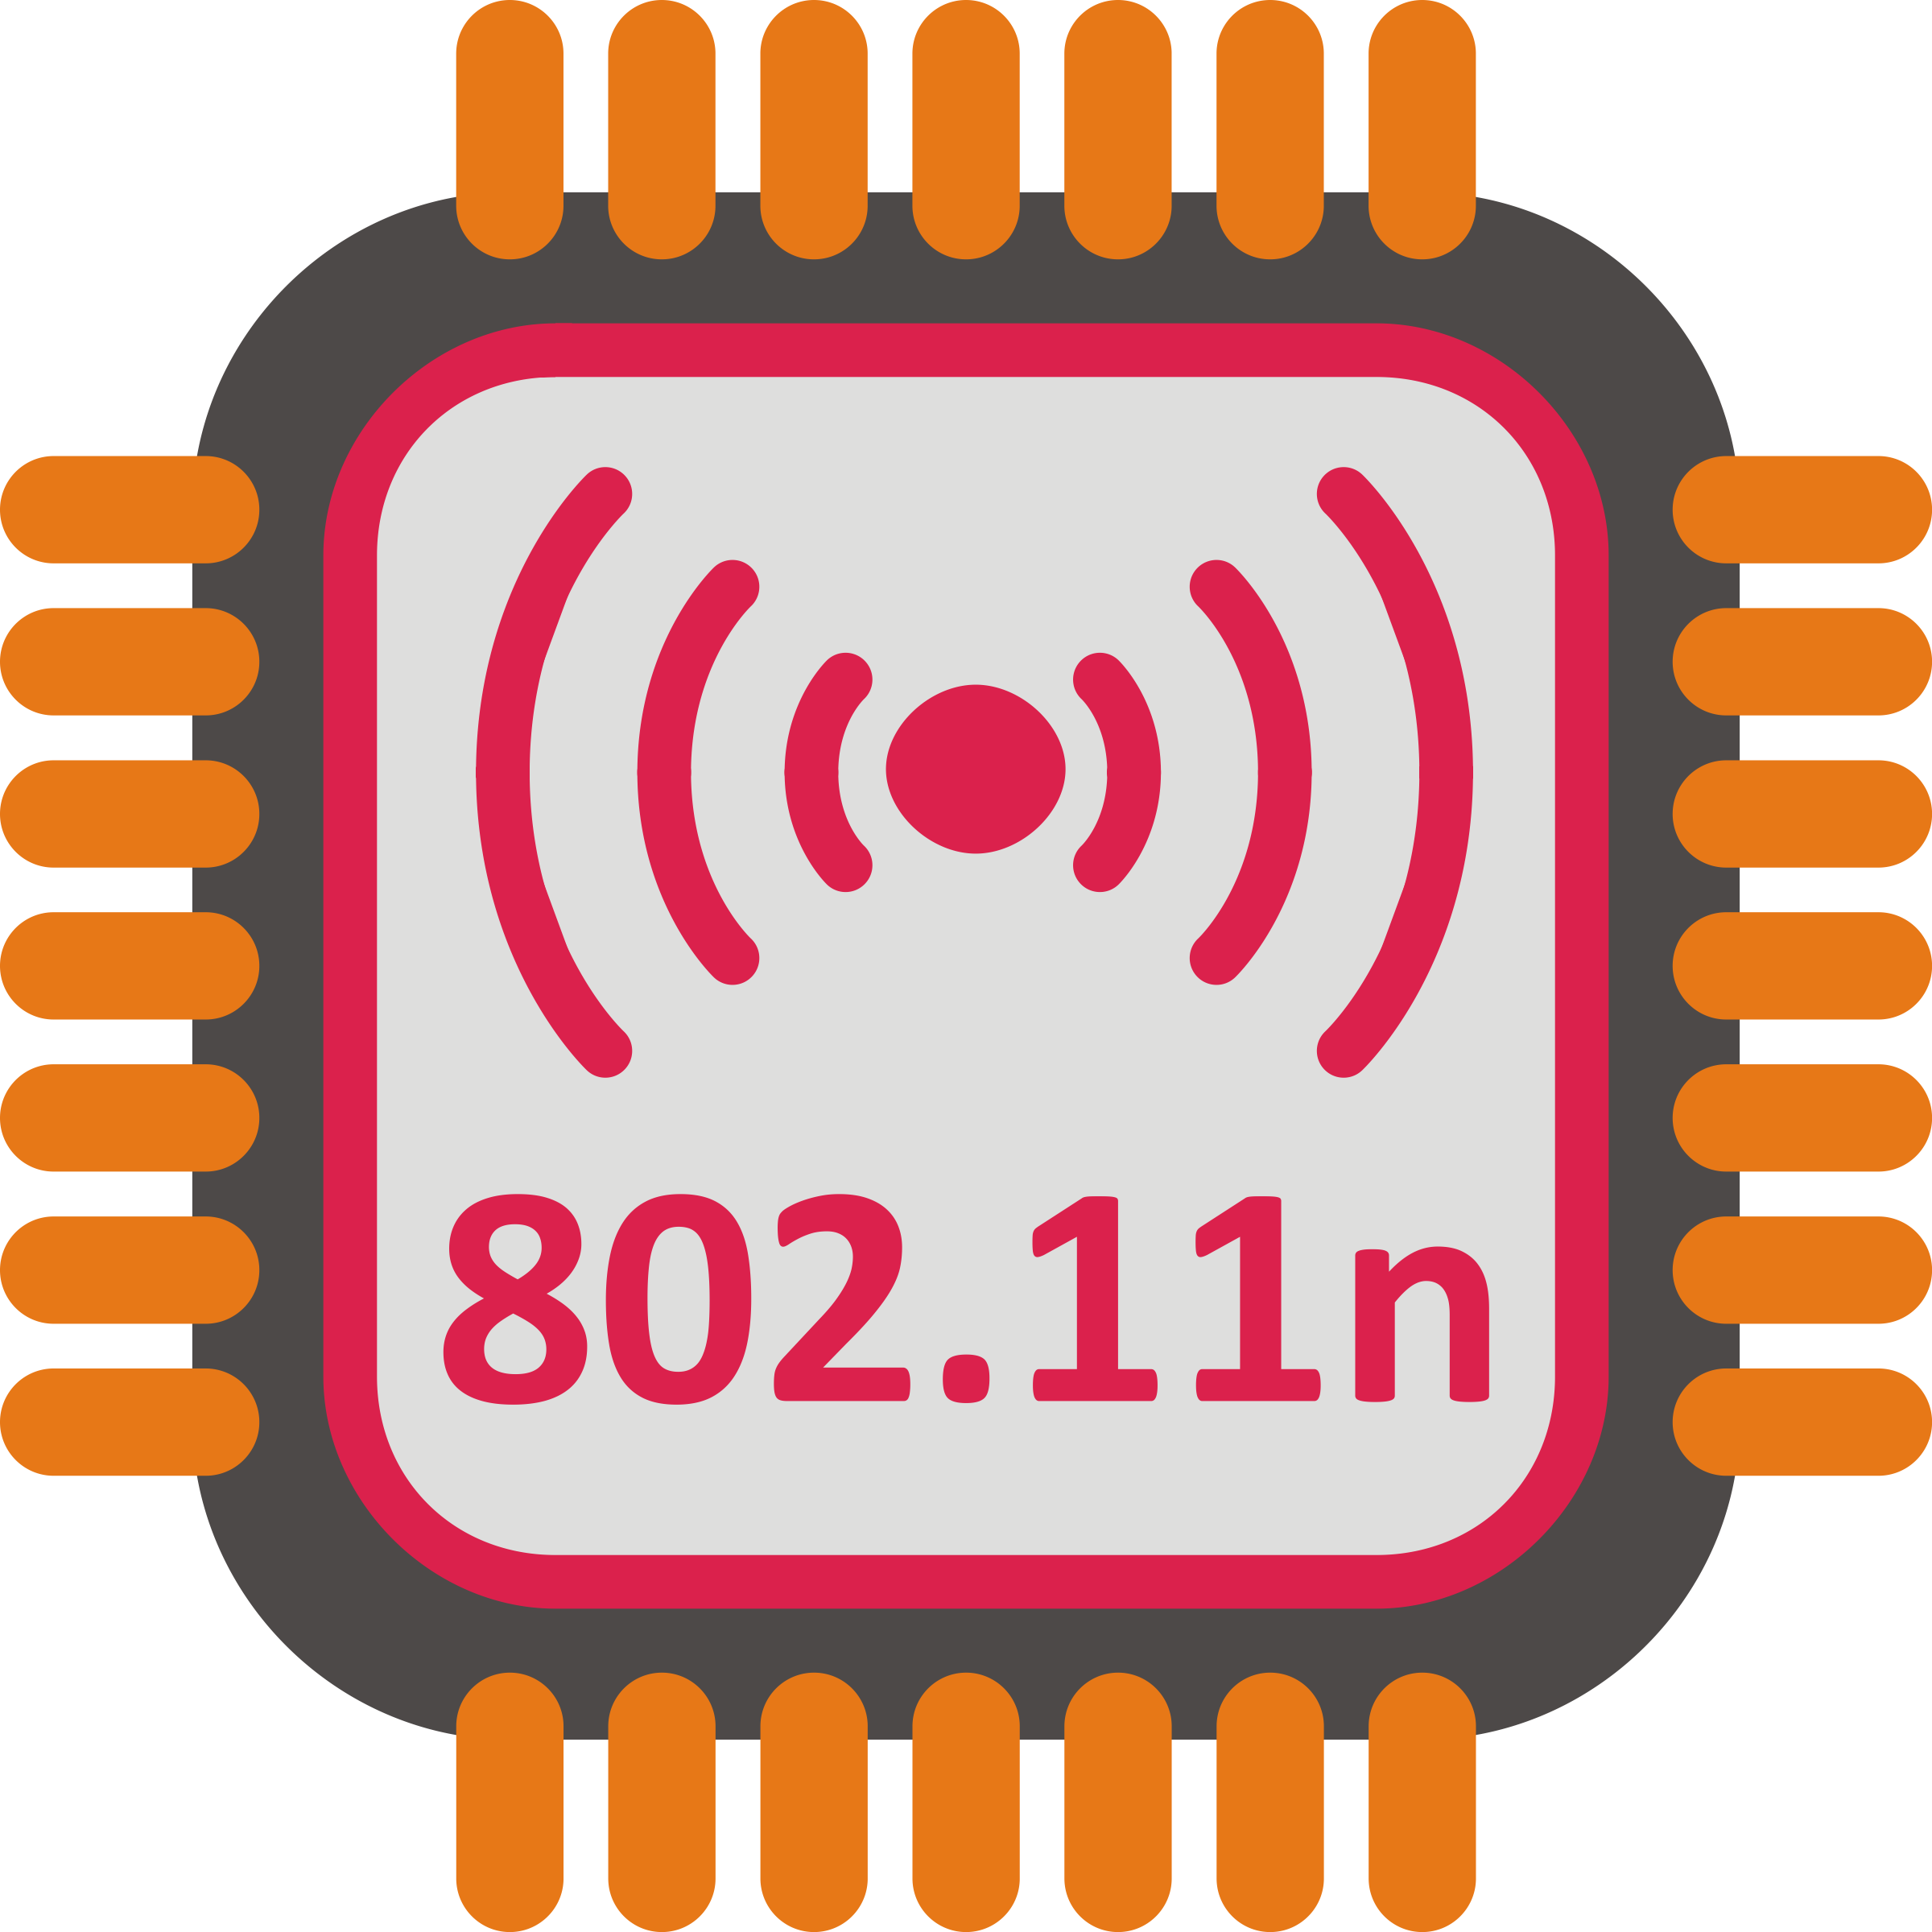 WiFi 802.11n by pgbrandolin